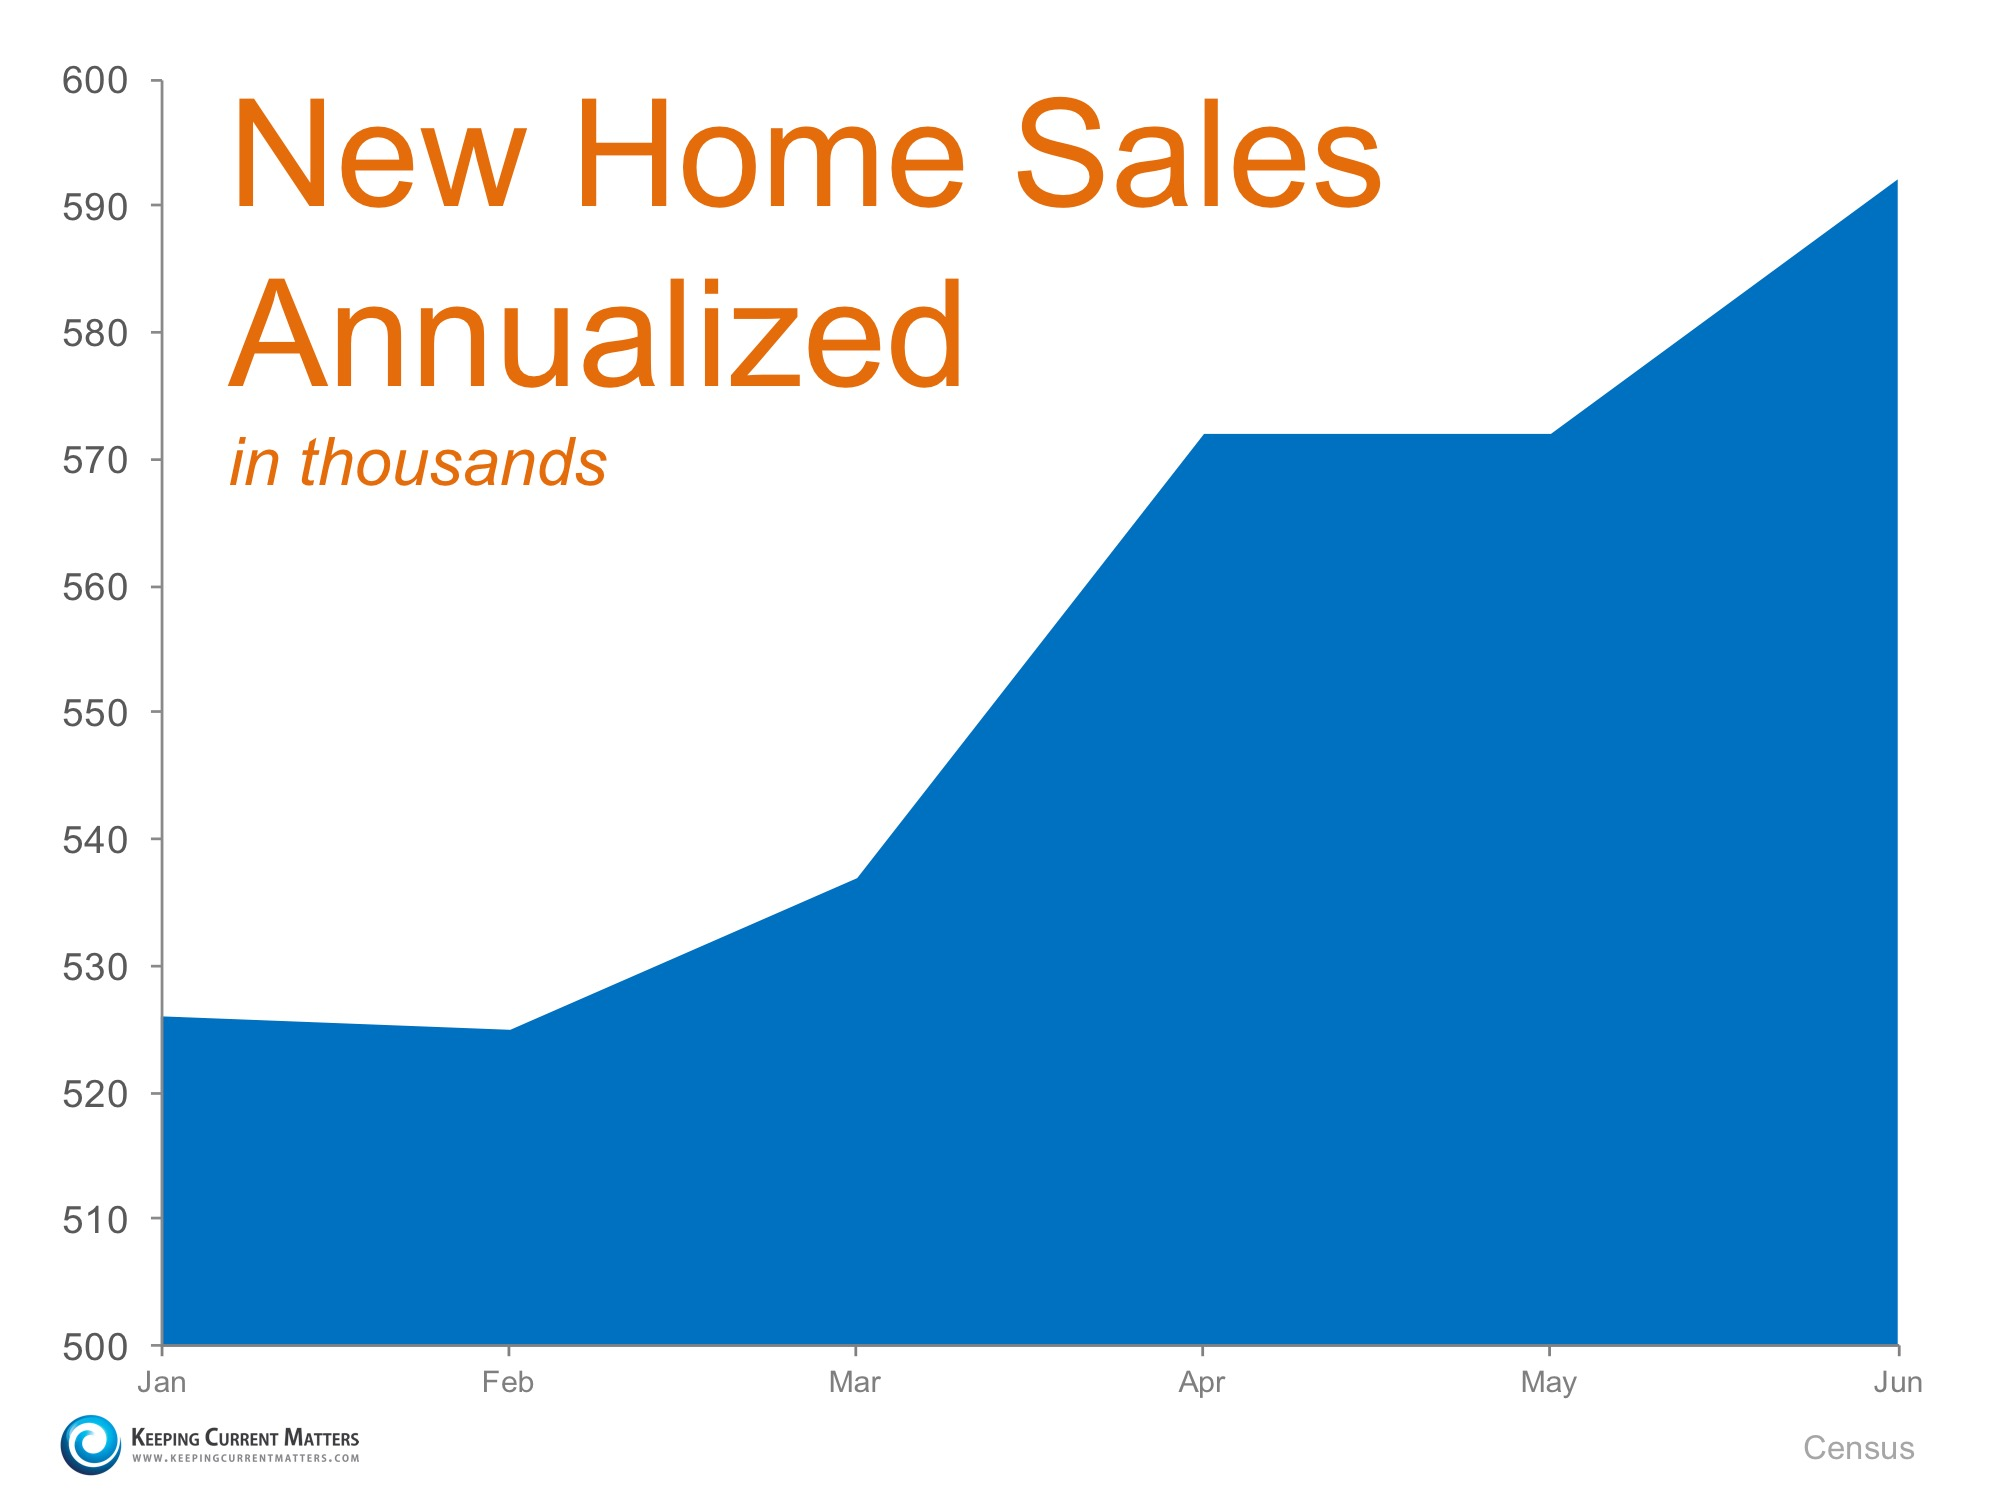 New Home Sales Up 25.4% Last Month! | Keeping Current Matters